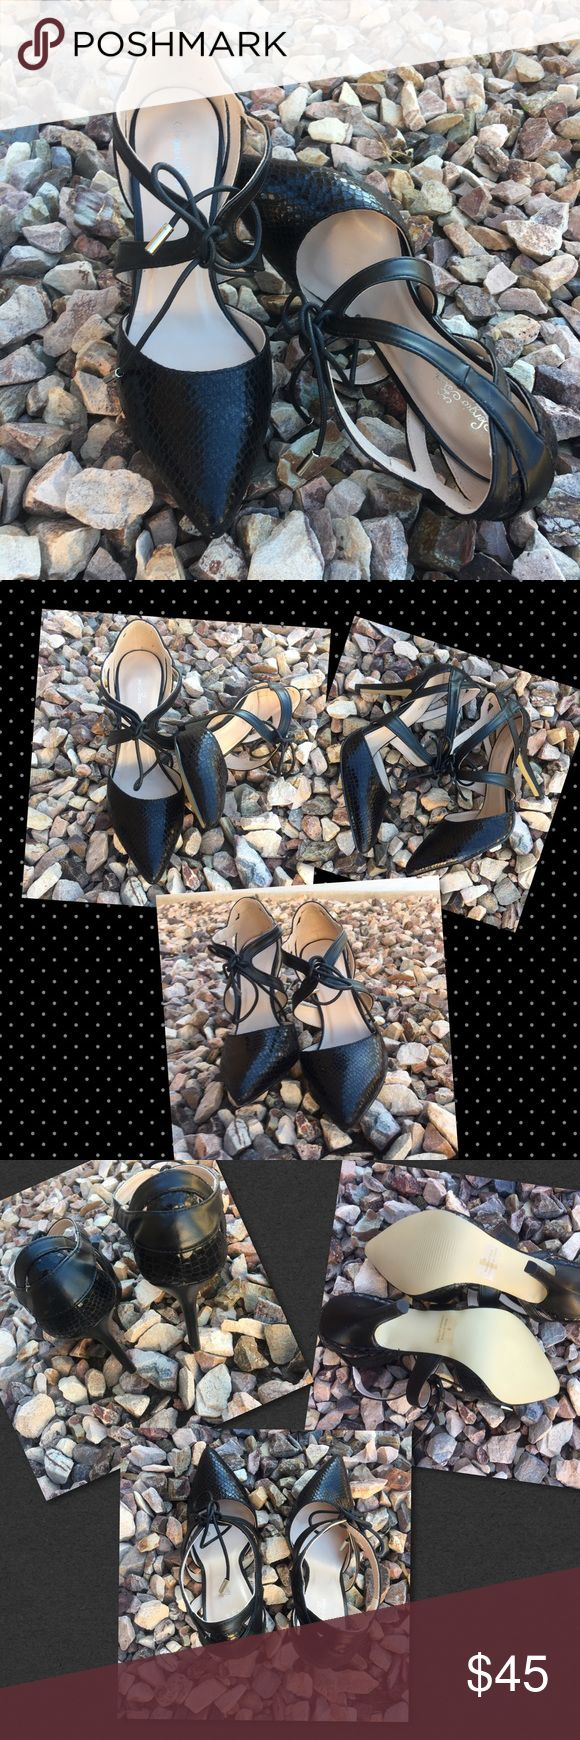 On Fleek They are gorgeous! Stiletto pumps! Gorgeous leather black snake style pumps to Rock your wardrobe. Wash away your troubles and sorrow with new shoes! Sensual strap tie with gold aglet ties nicely at the top for a perfect fit. A shoe that states classy! Shoes Heels